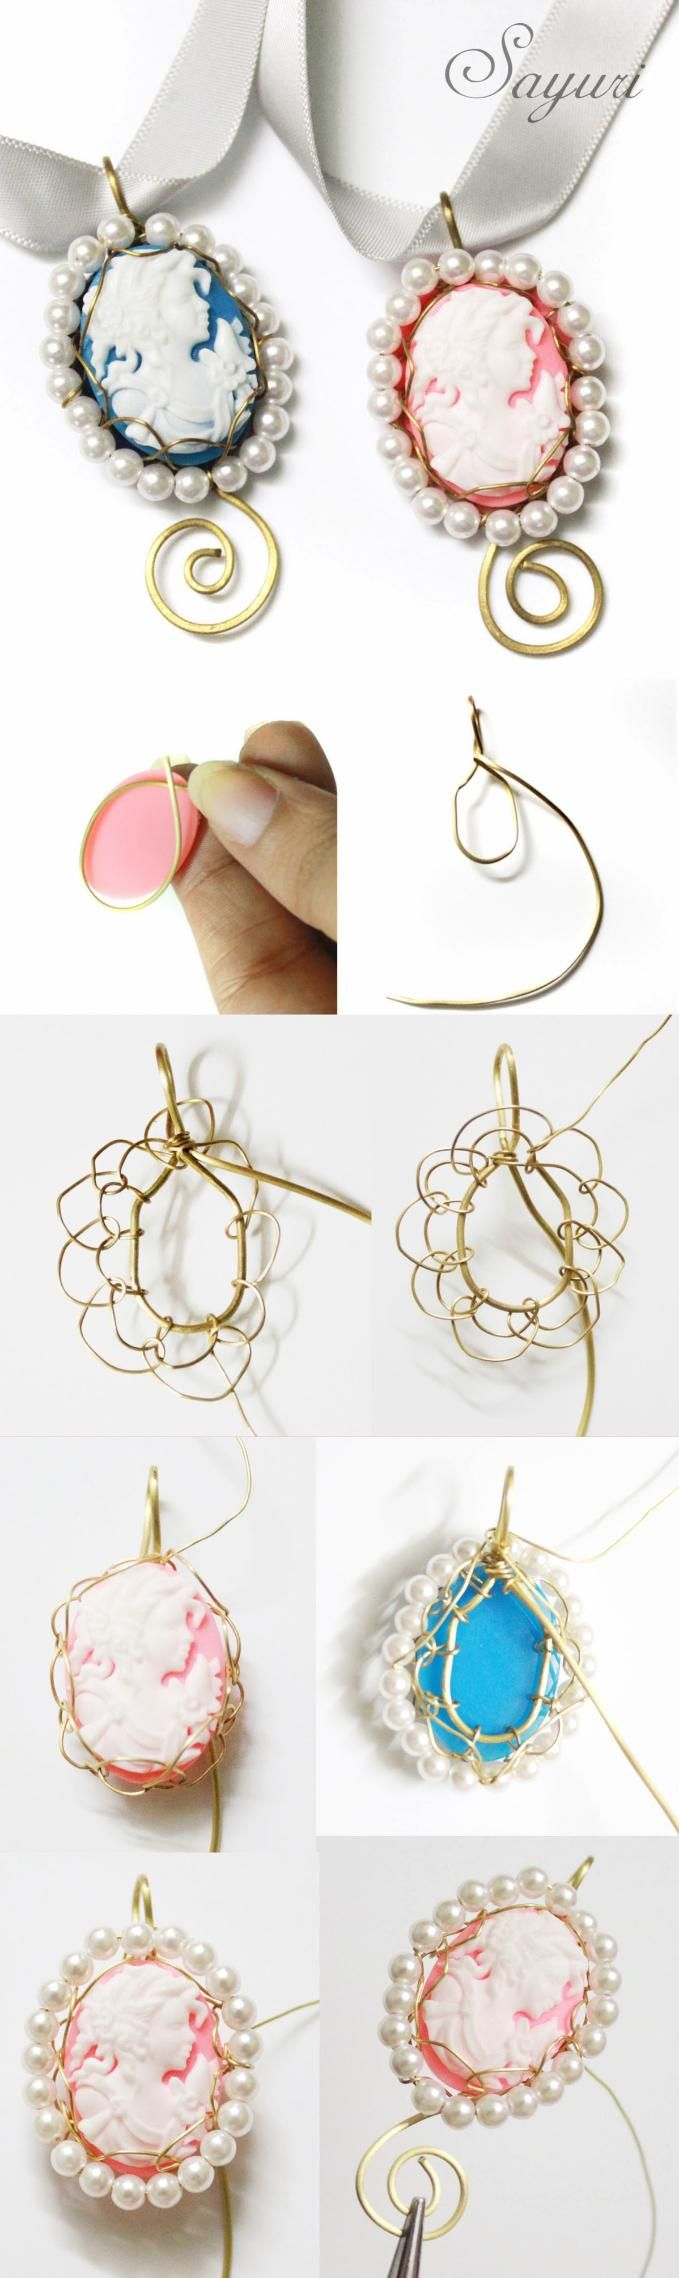 55 best Jewelry making ideas images on Pinterest | Wire jewelry ...